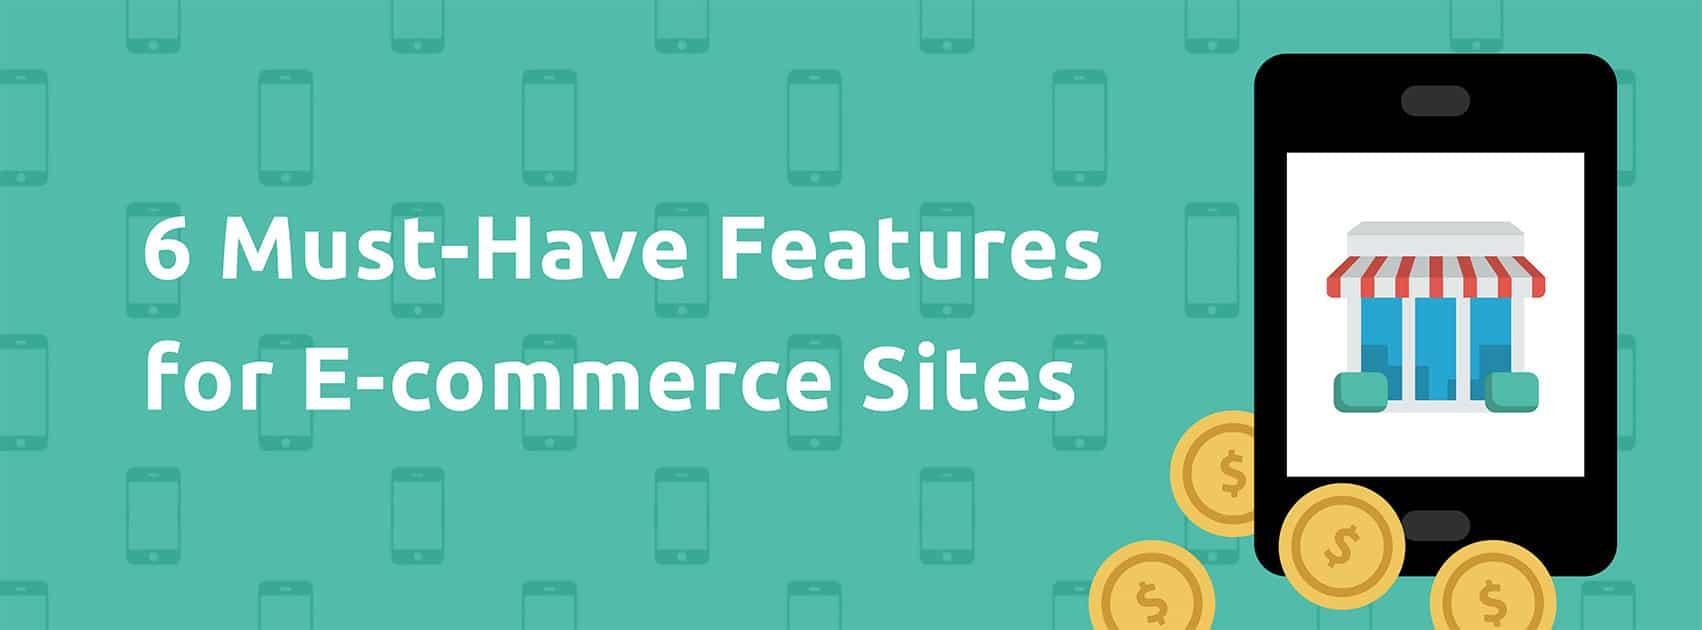 6 Must Have Features for E-commerce Sites 2